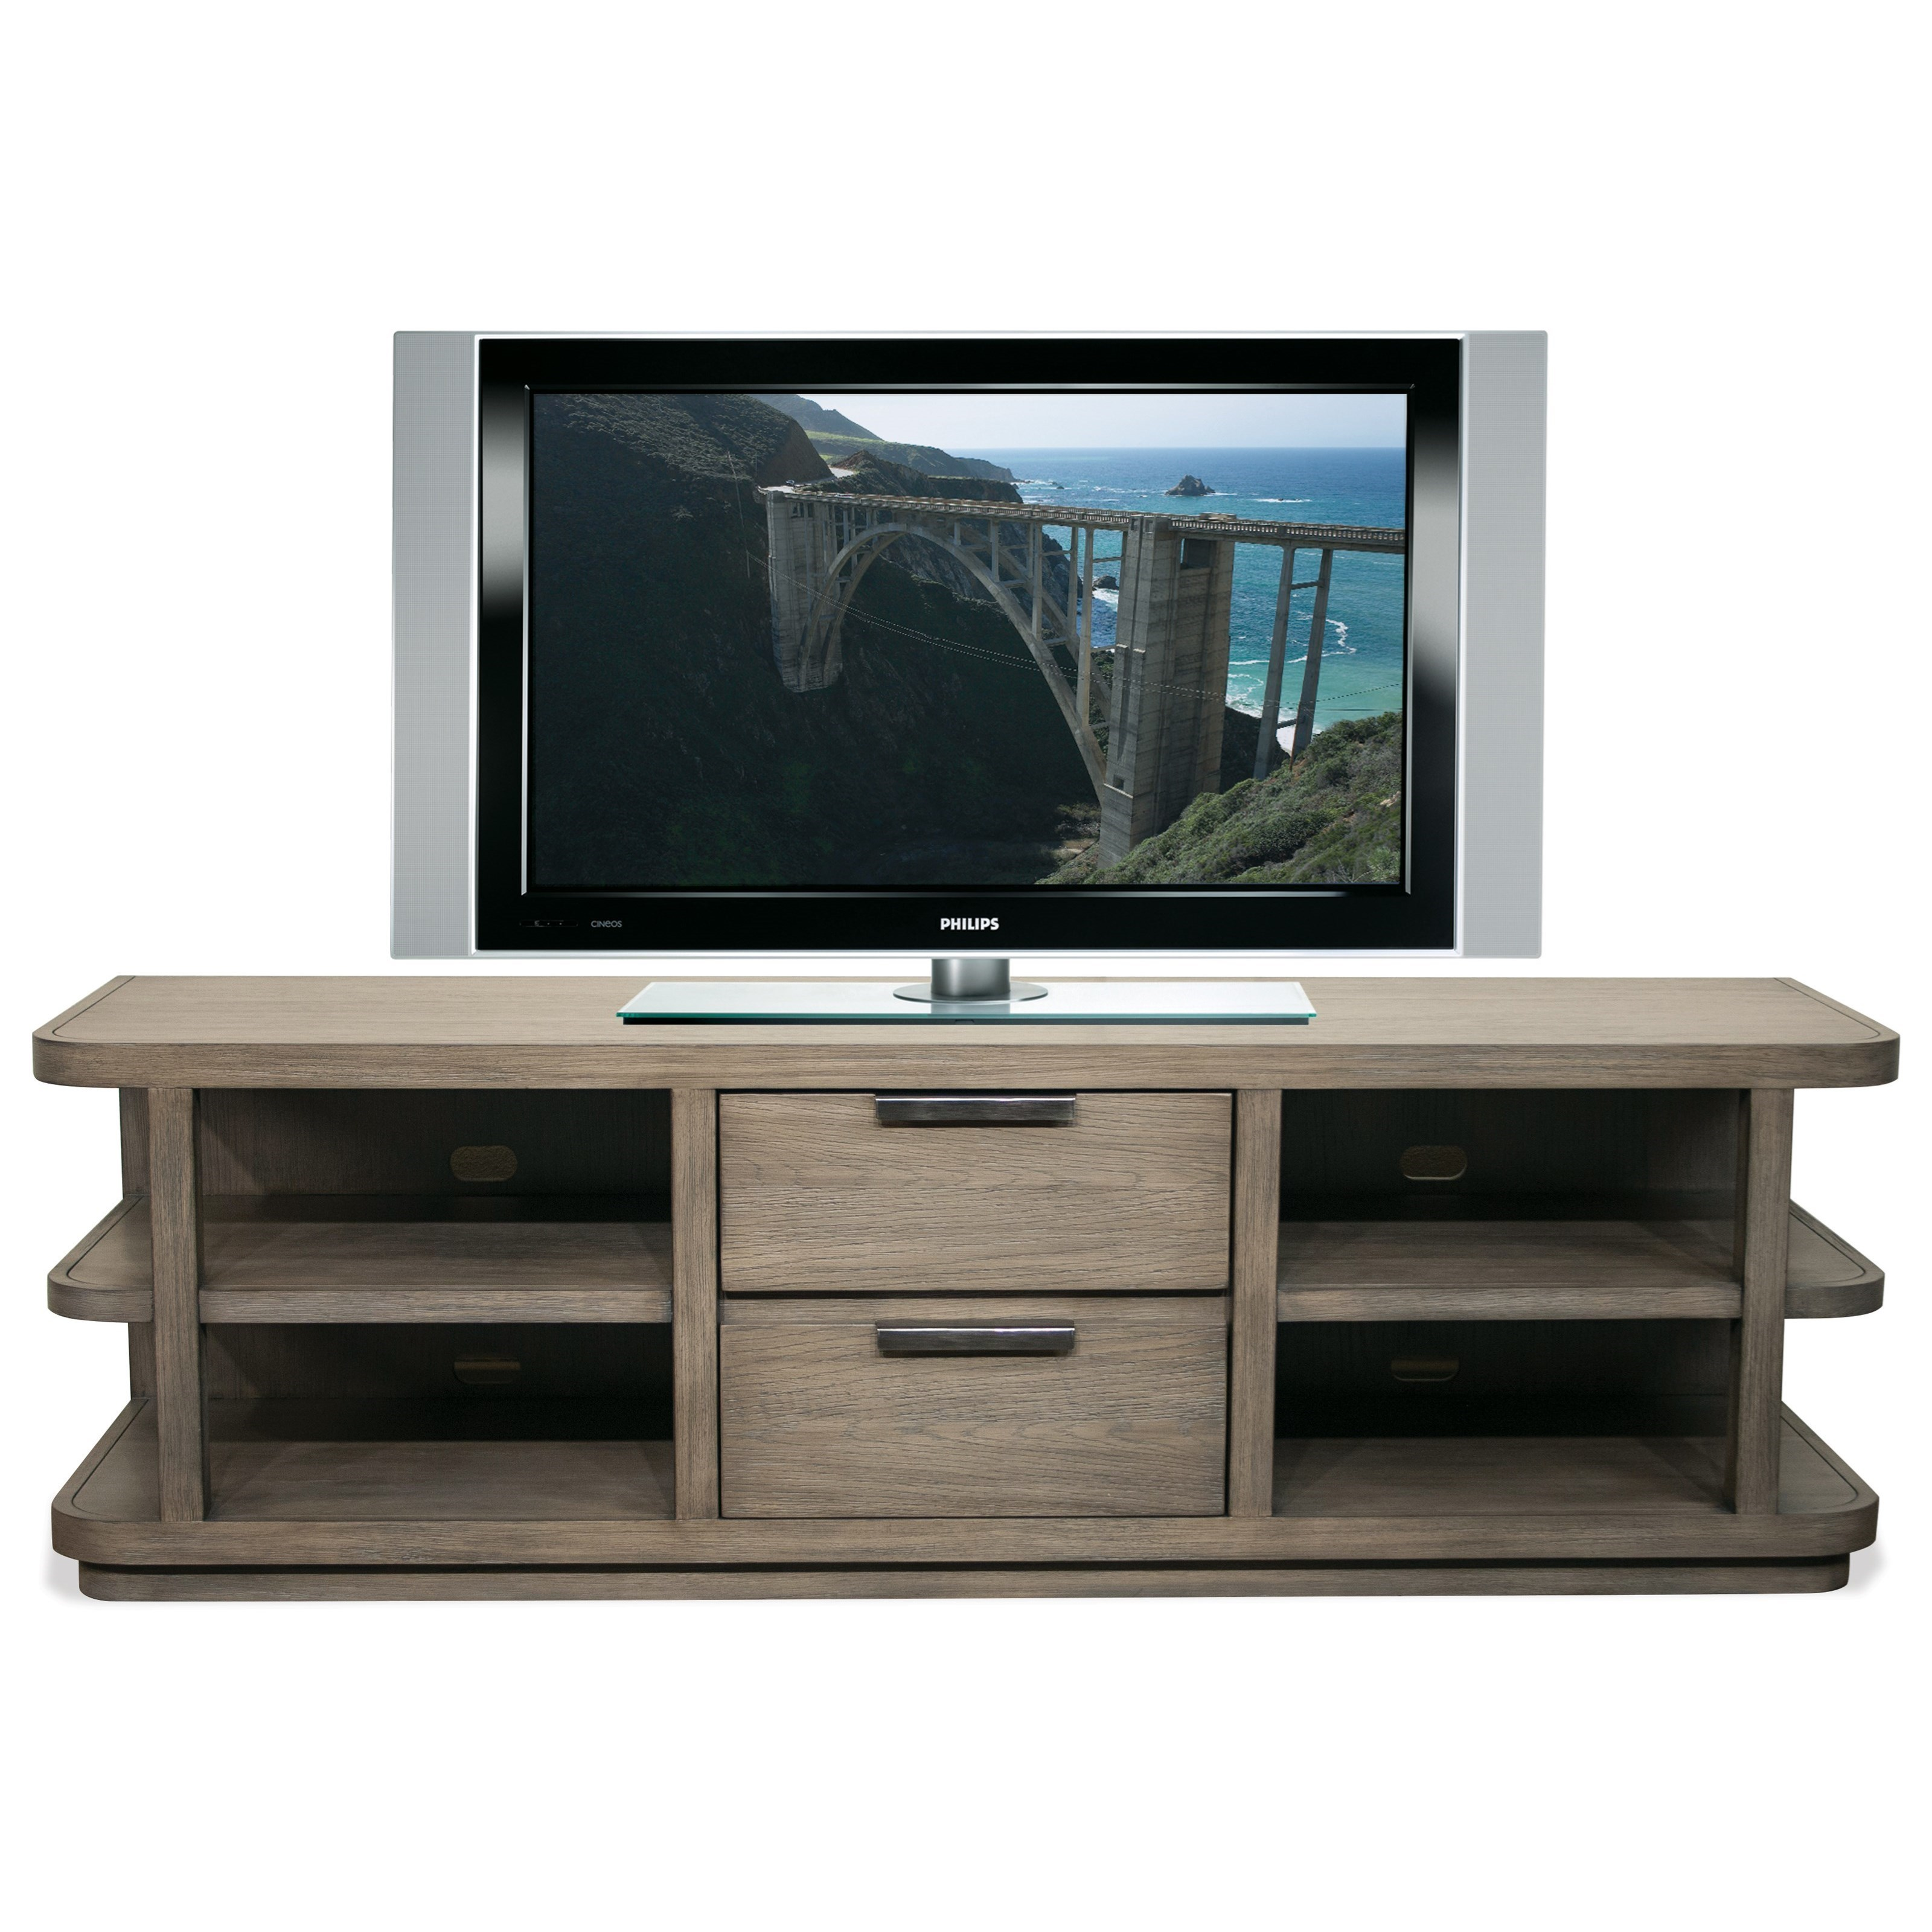 Merveilleux Riverside Furniture Precision Contemporary Entertainment Console With 4  Shelves And Rounded Corners